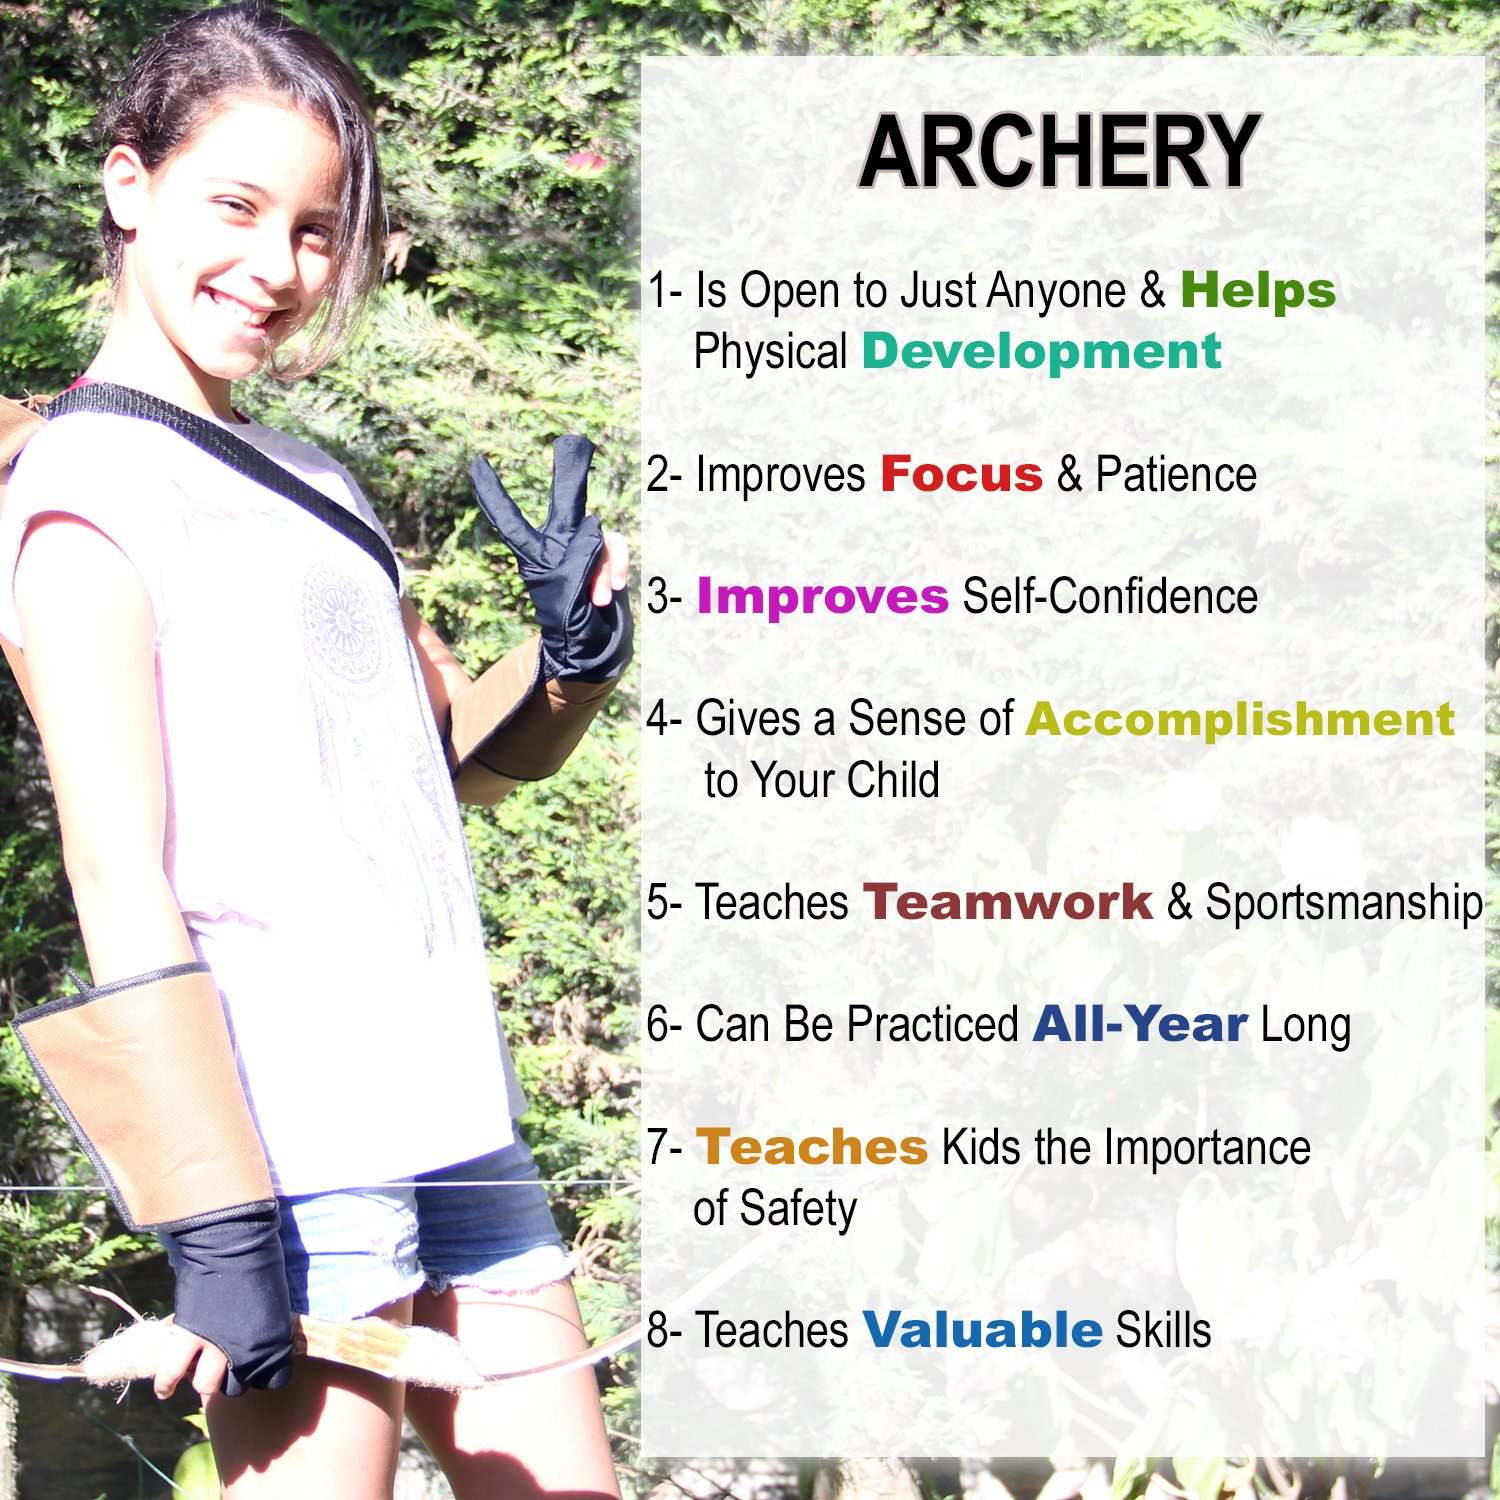 Knidose Beginners Bow Arrow Kids | 36 Pieces Safe Archery Set Outdoor Indoor Fun, Handcrafted Wooden 1 Bow, 15 Arrows, 15 Target Sheets, 1 Quiver, 2 Arm 2 Finger Guards Shooting Toy by Knidose (Image #6)